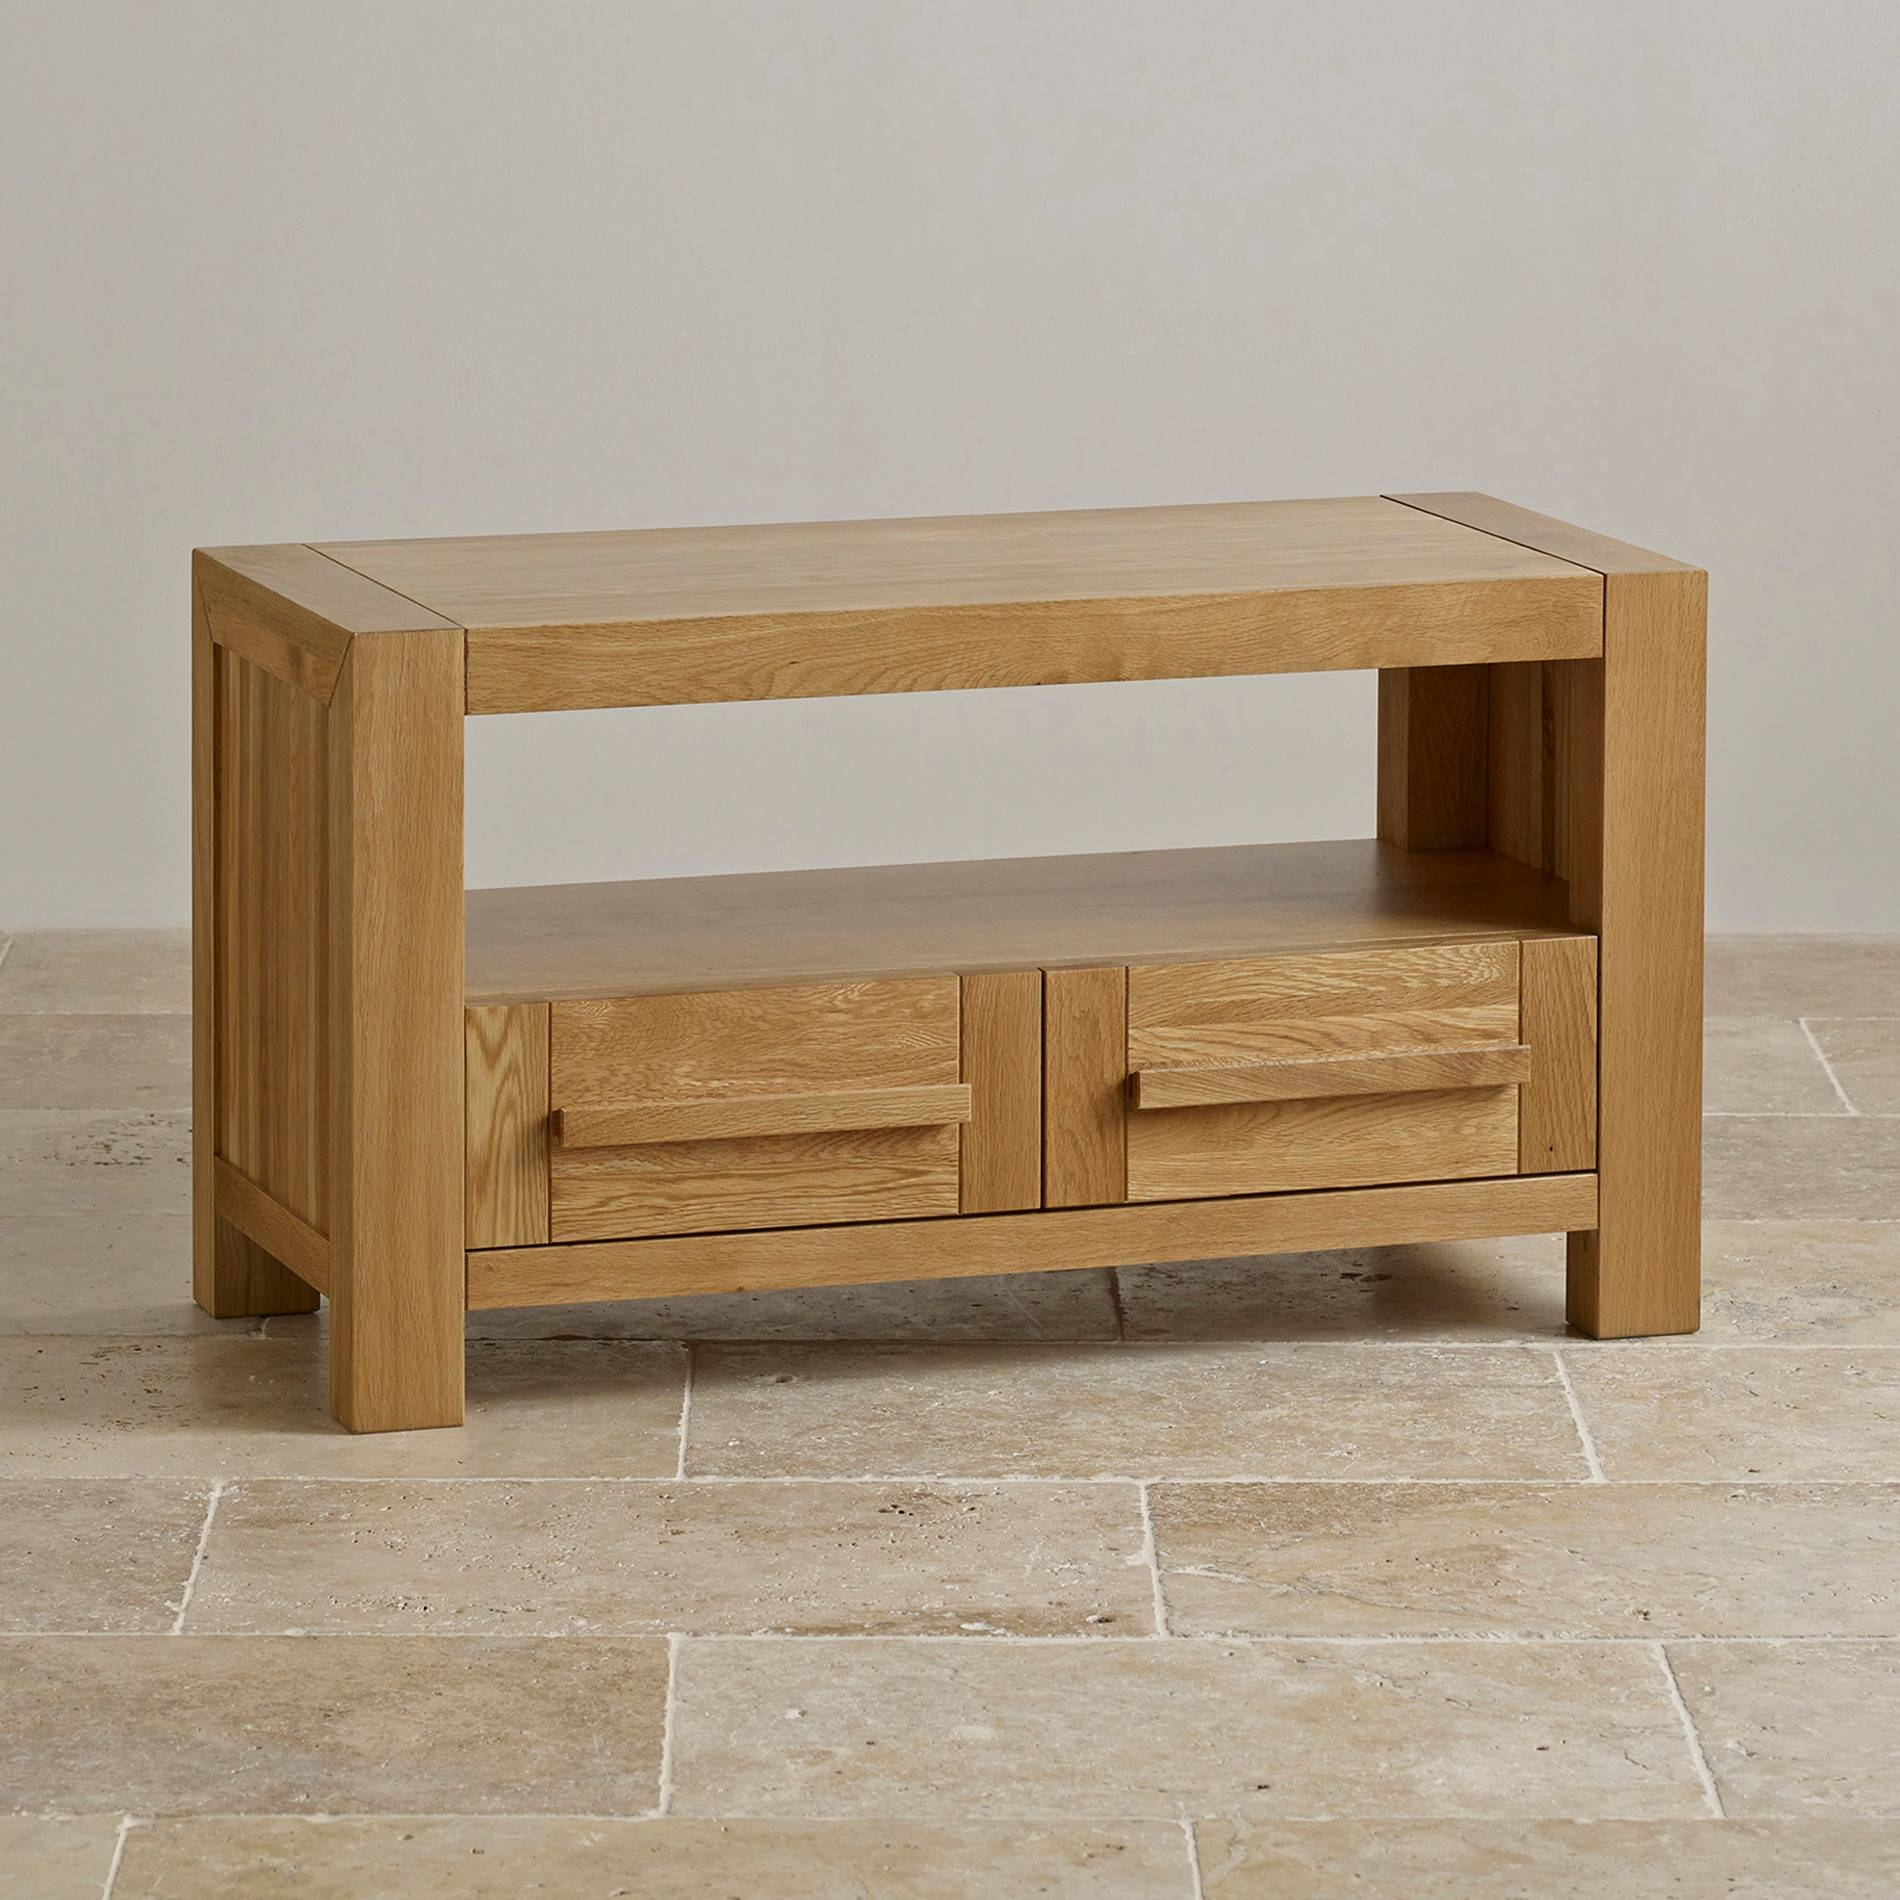 Fresco 2 Drawer Tv Cabinet In Solid Oak | Oak Furniture Land for Hardwood Tv Stands (Image 5 of 15)